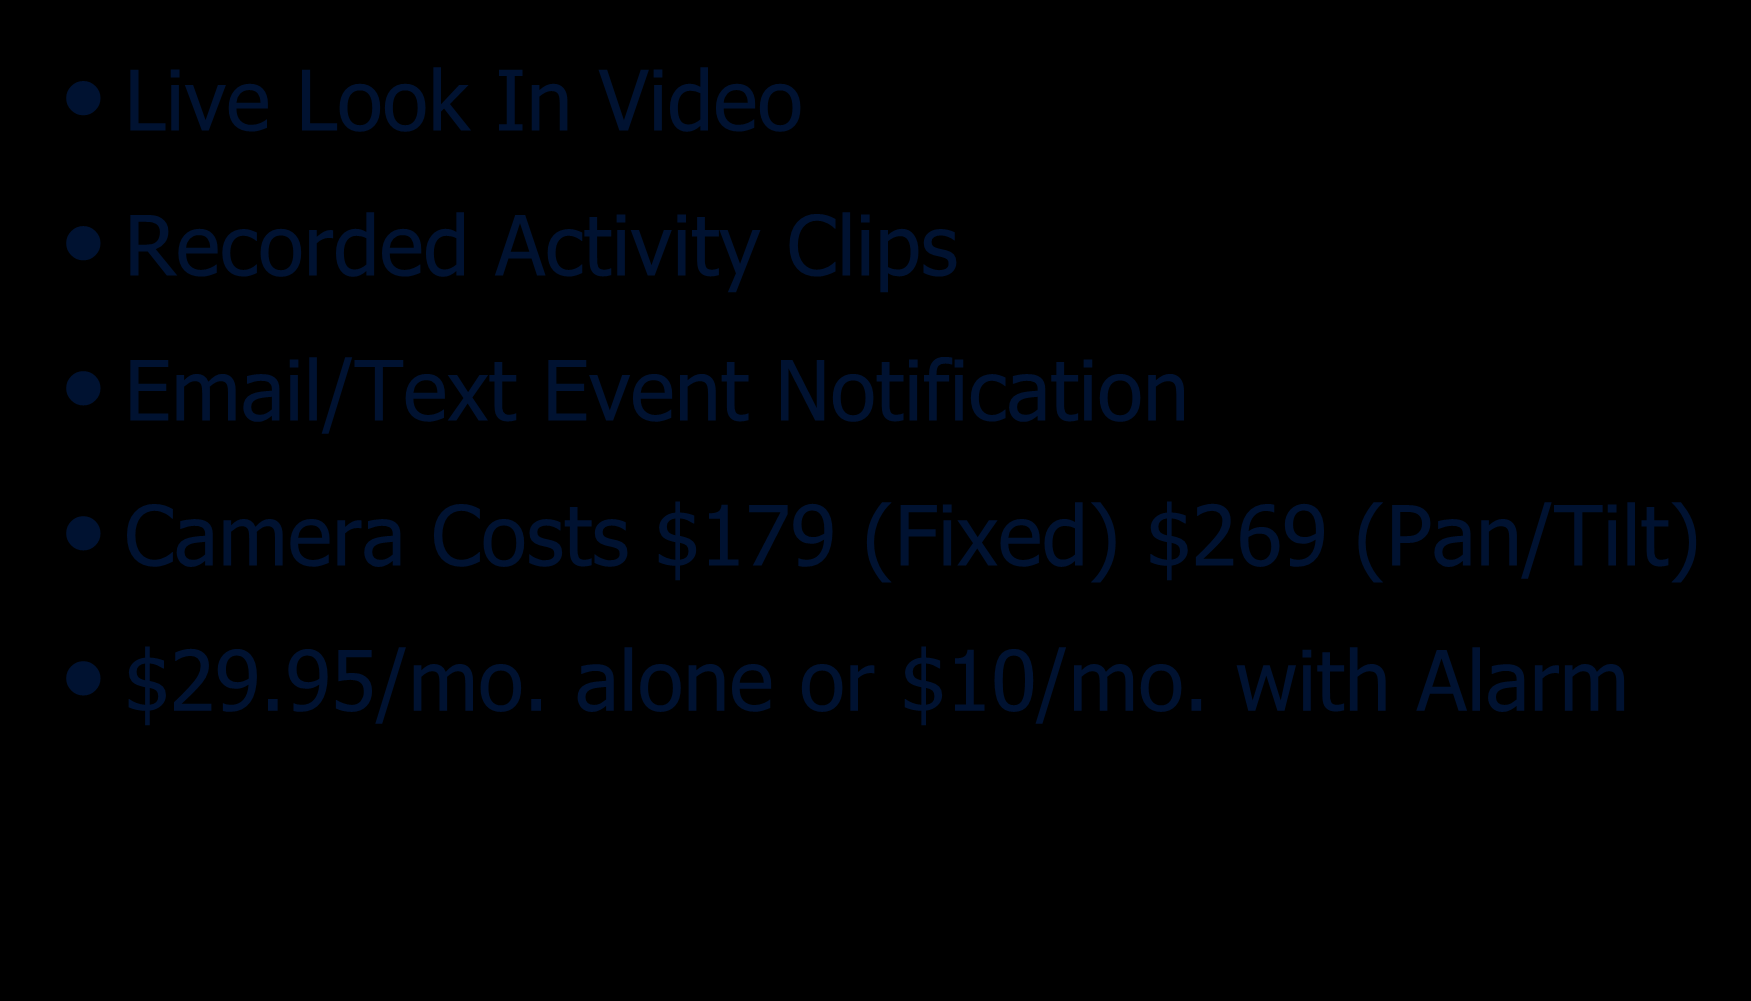 Notification Camera Costs $179 (Fixed)